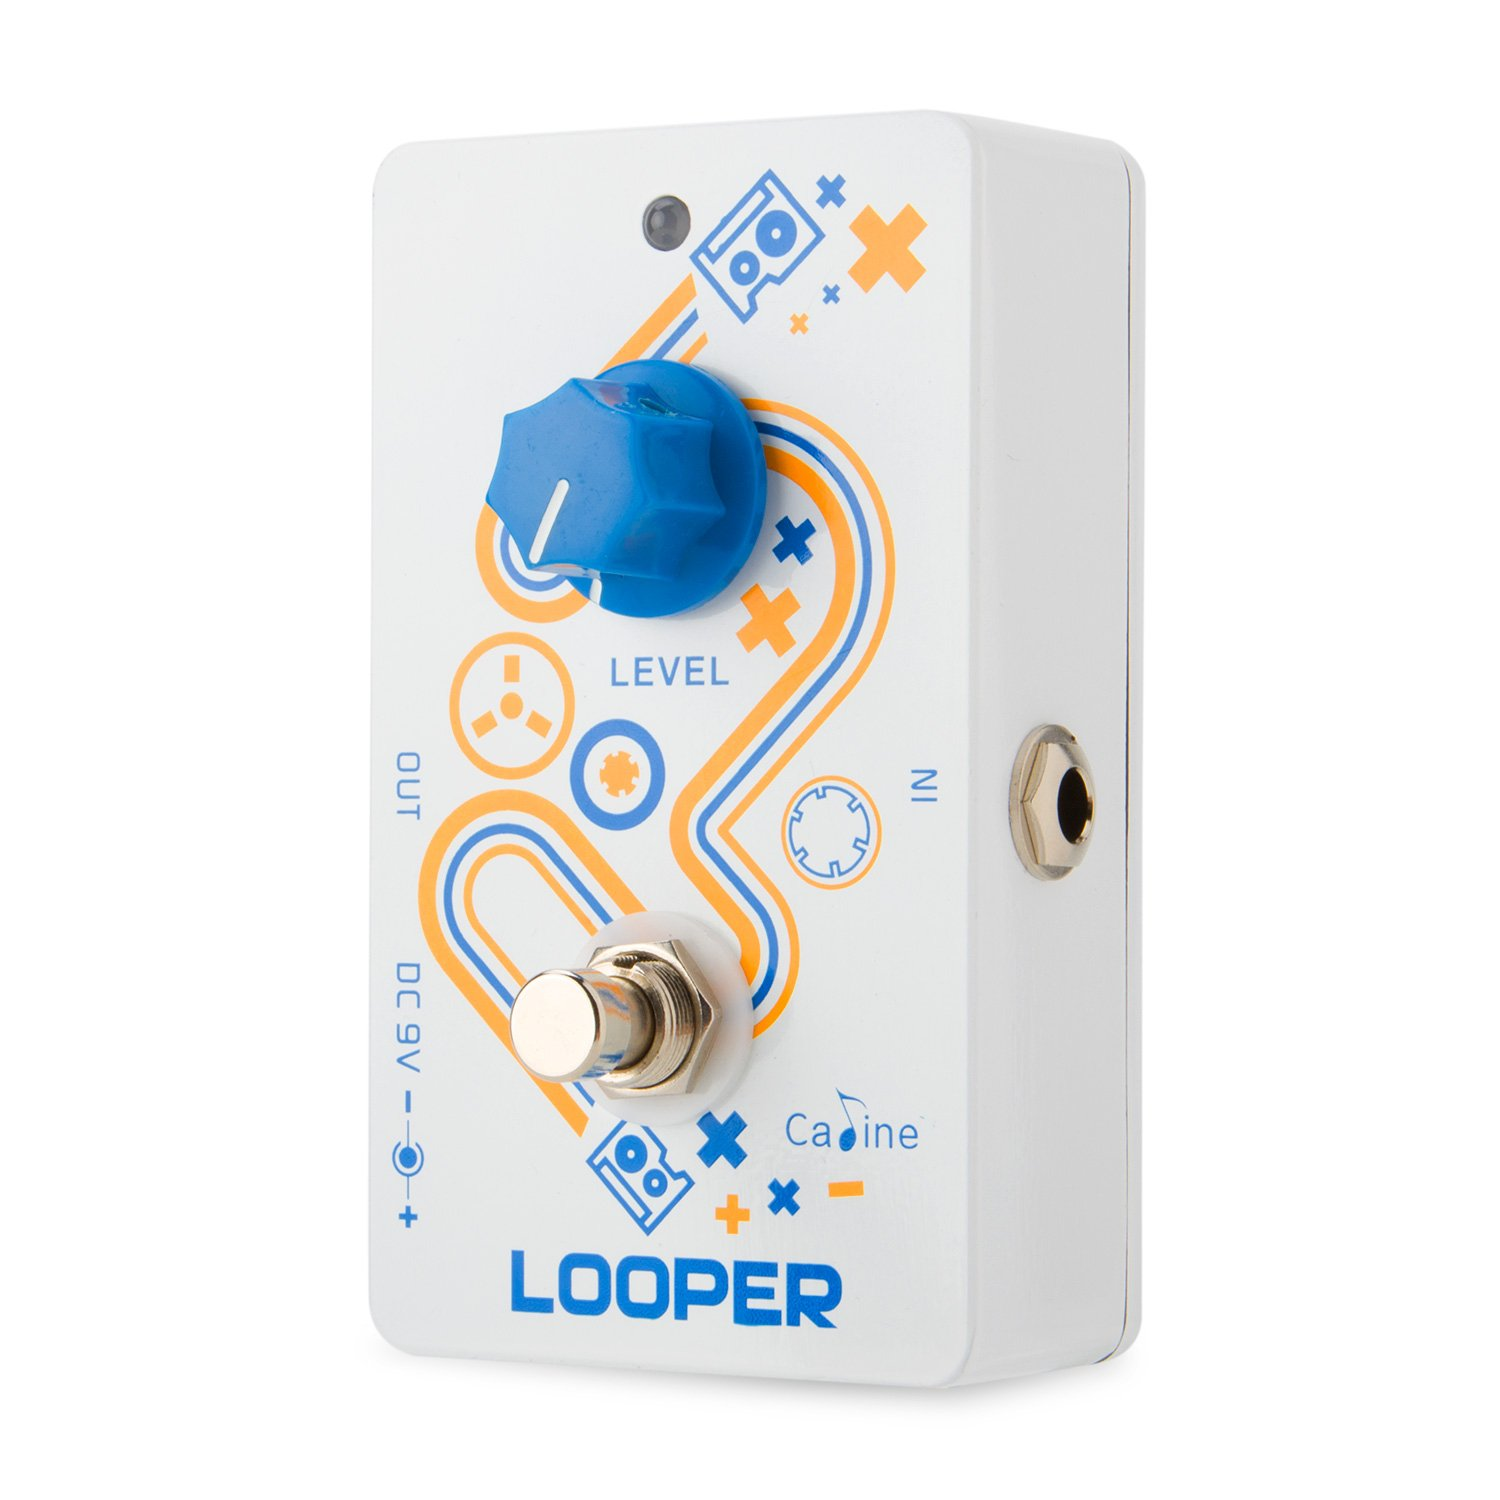 Caline Looper Guitar Pedal Effects Pedal True Bypass Unlimited Overdubs 10 Minutes of Loop Recording CP-33 Looper, White